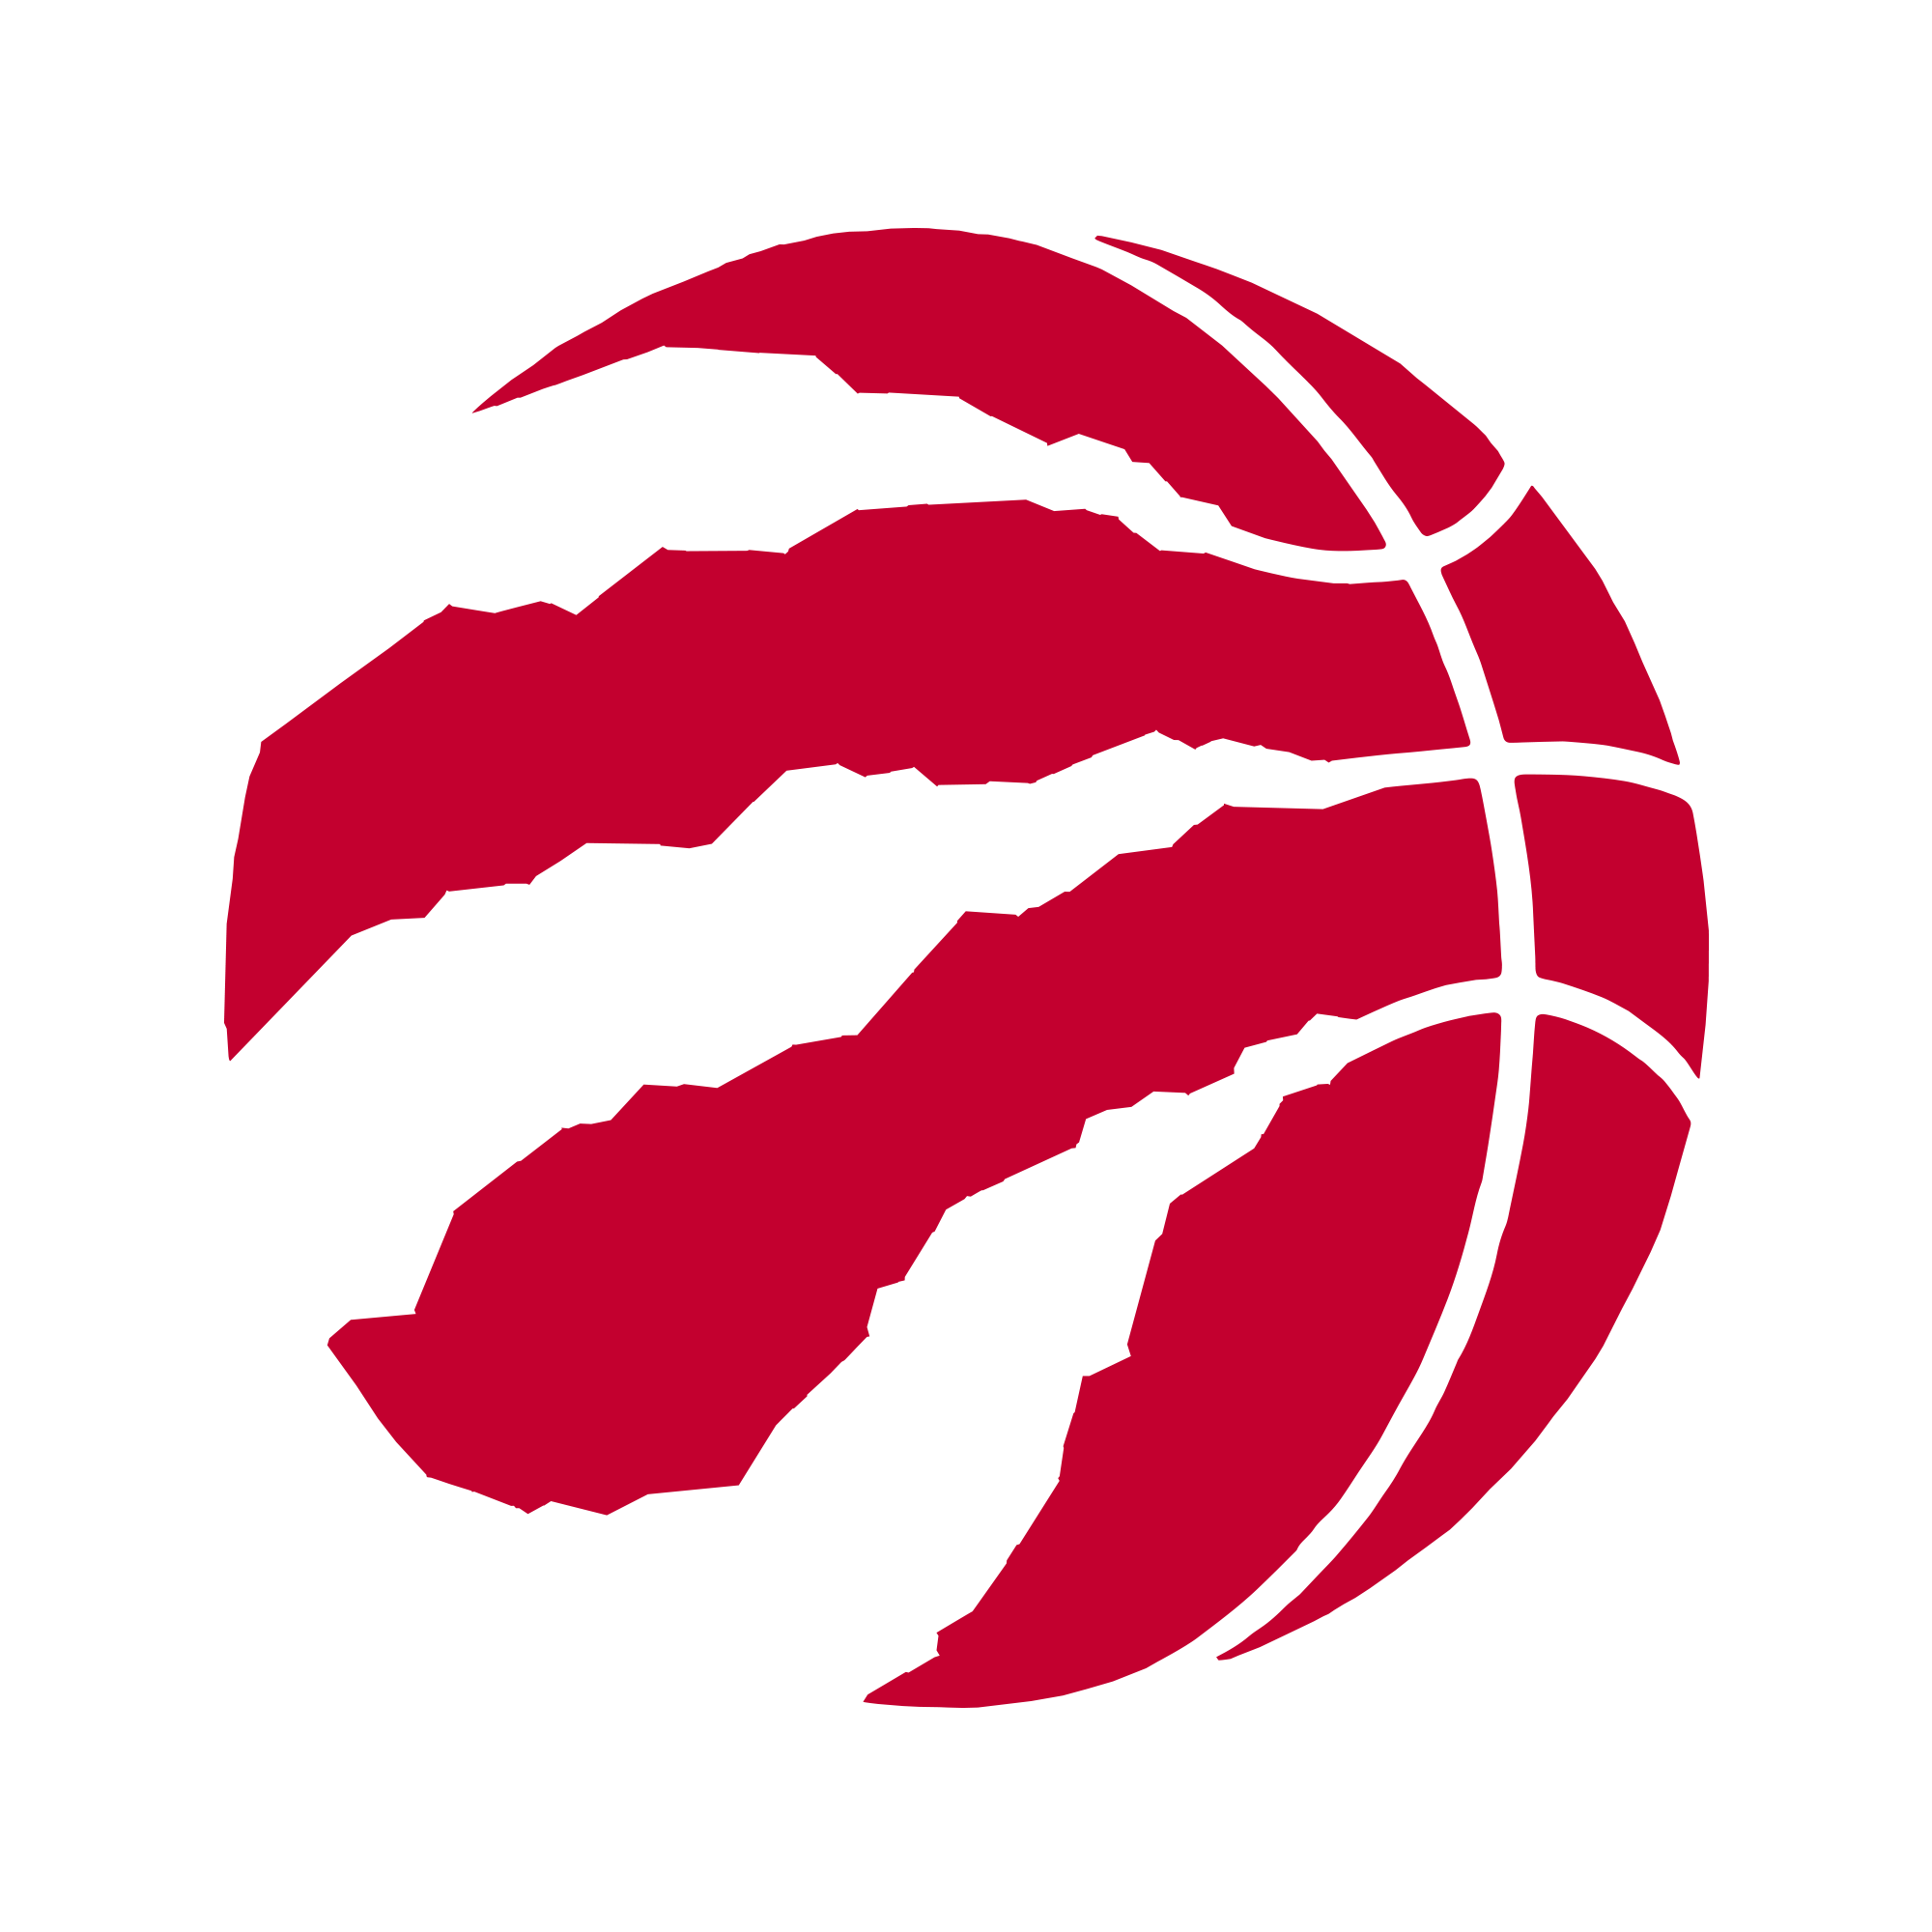 Toronto Raptors Basketball News | TSN